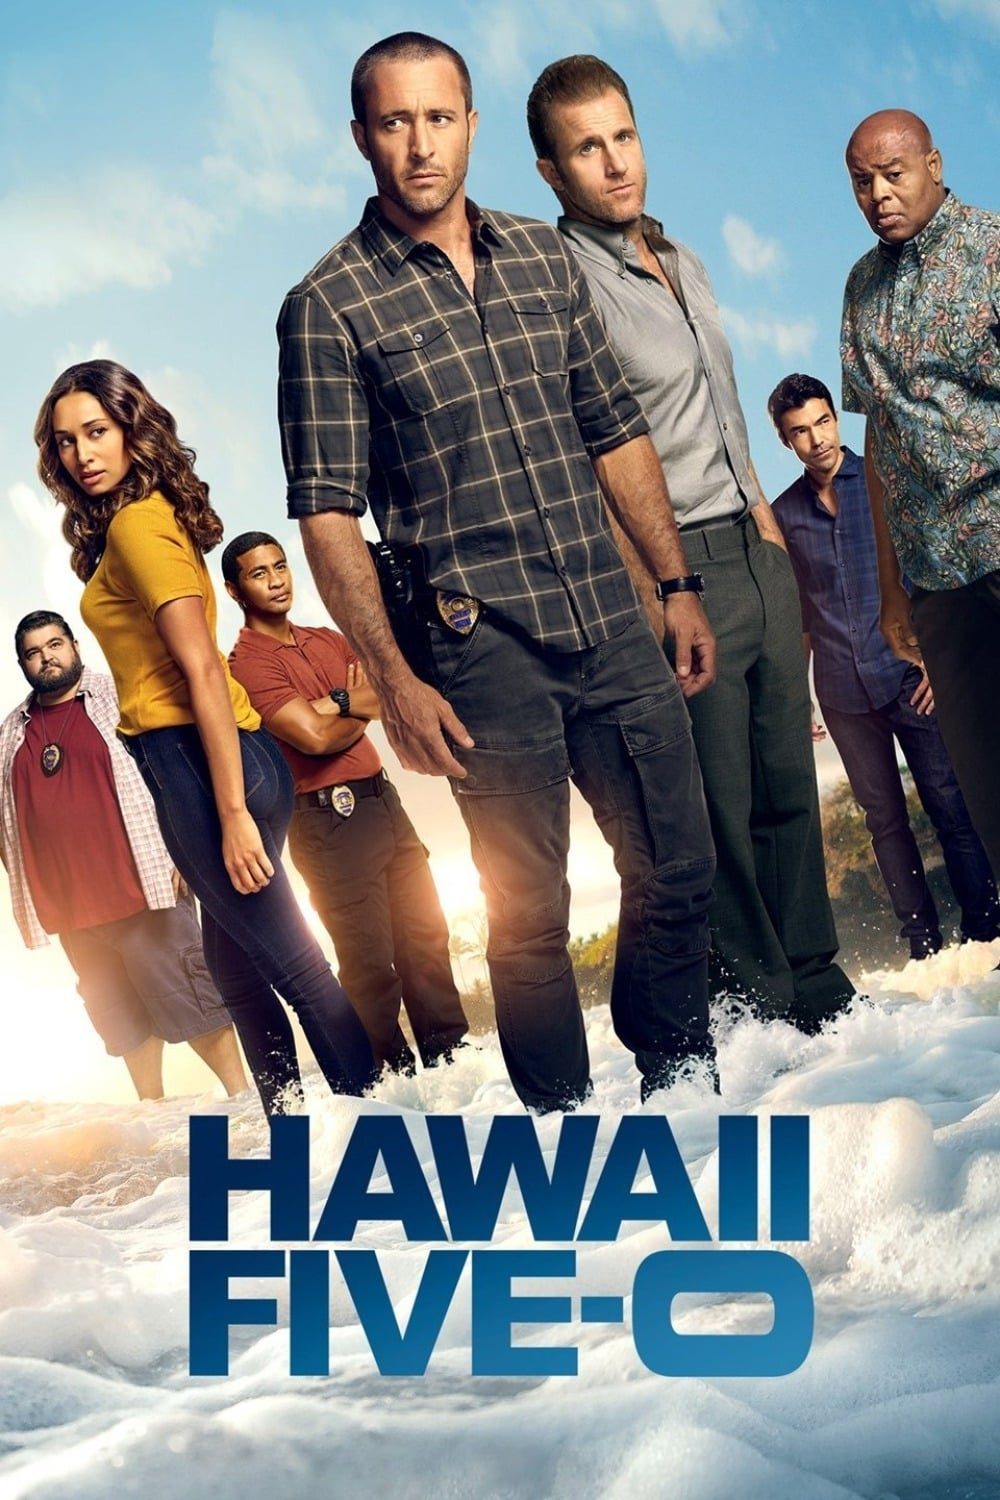 image for Hawaii Five-0